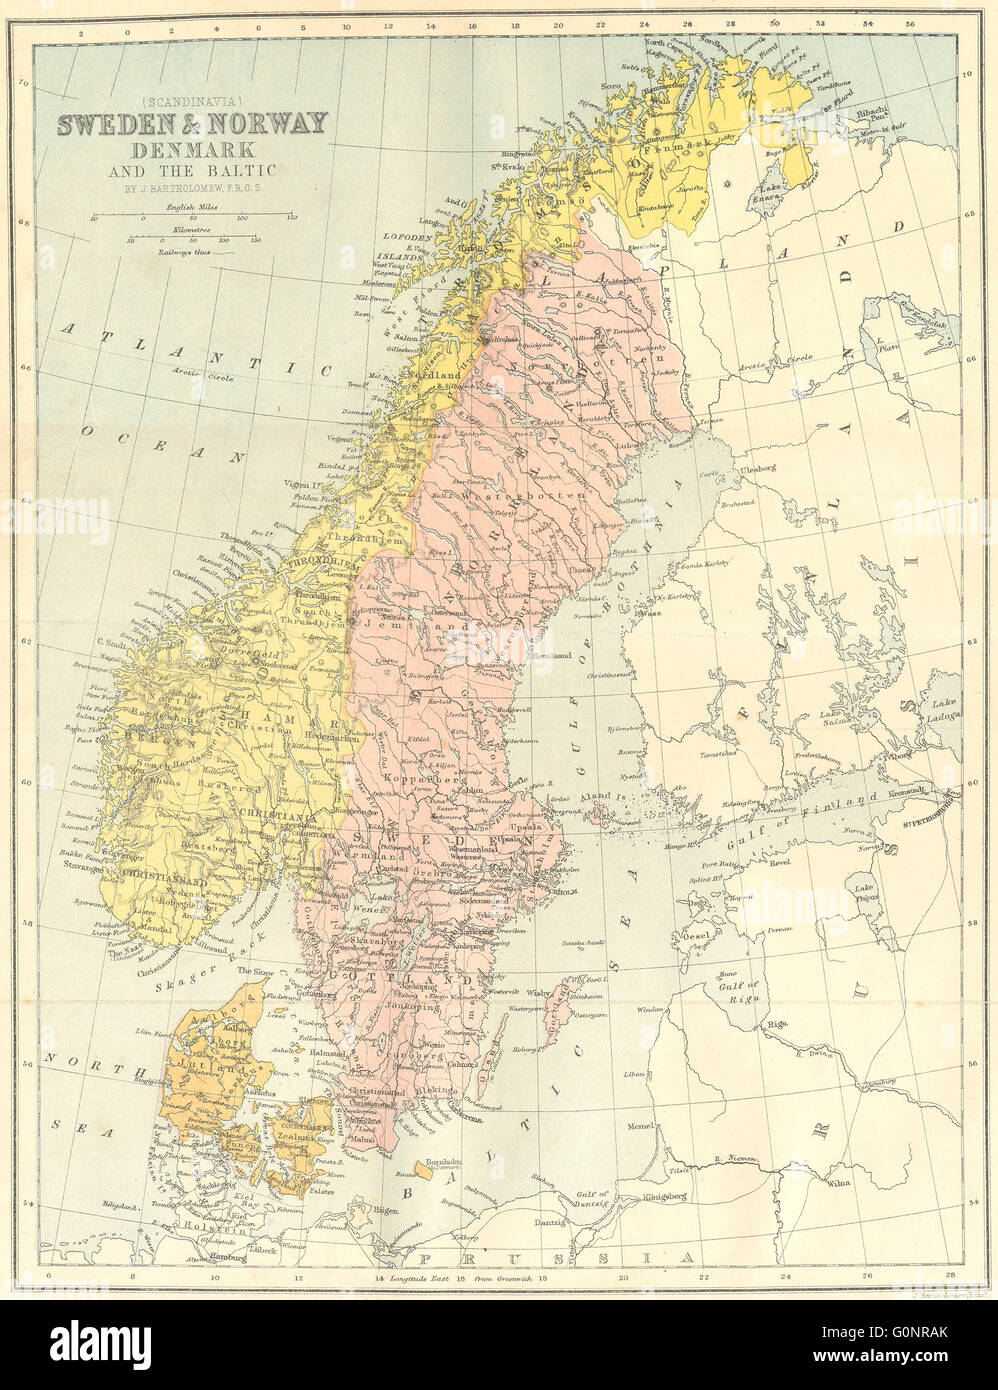 Sweden norway denmark baltic 1871 antique map stock photo sweden norway denmark baltic 1871 antique map gumiabroncs Images